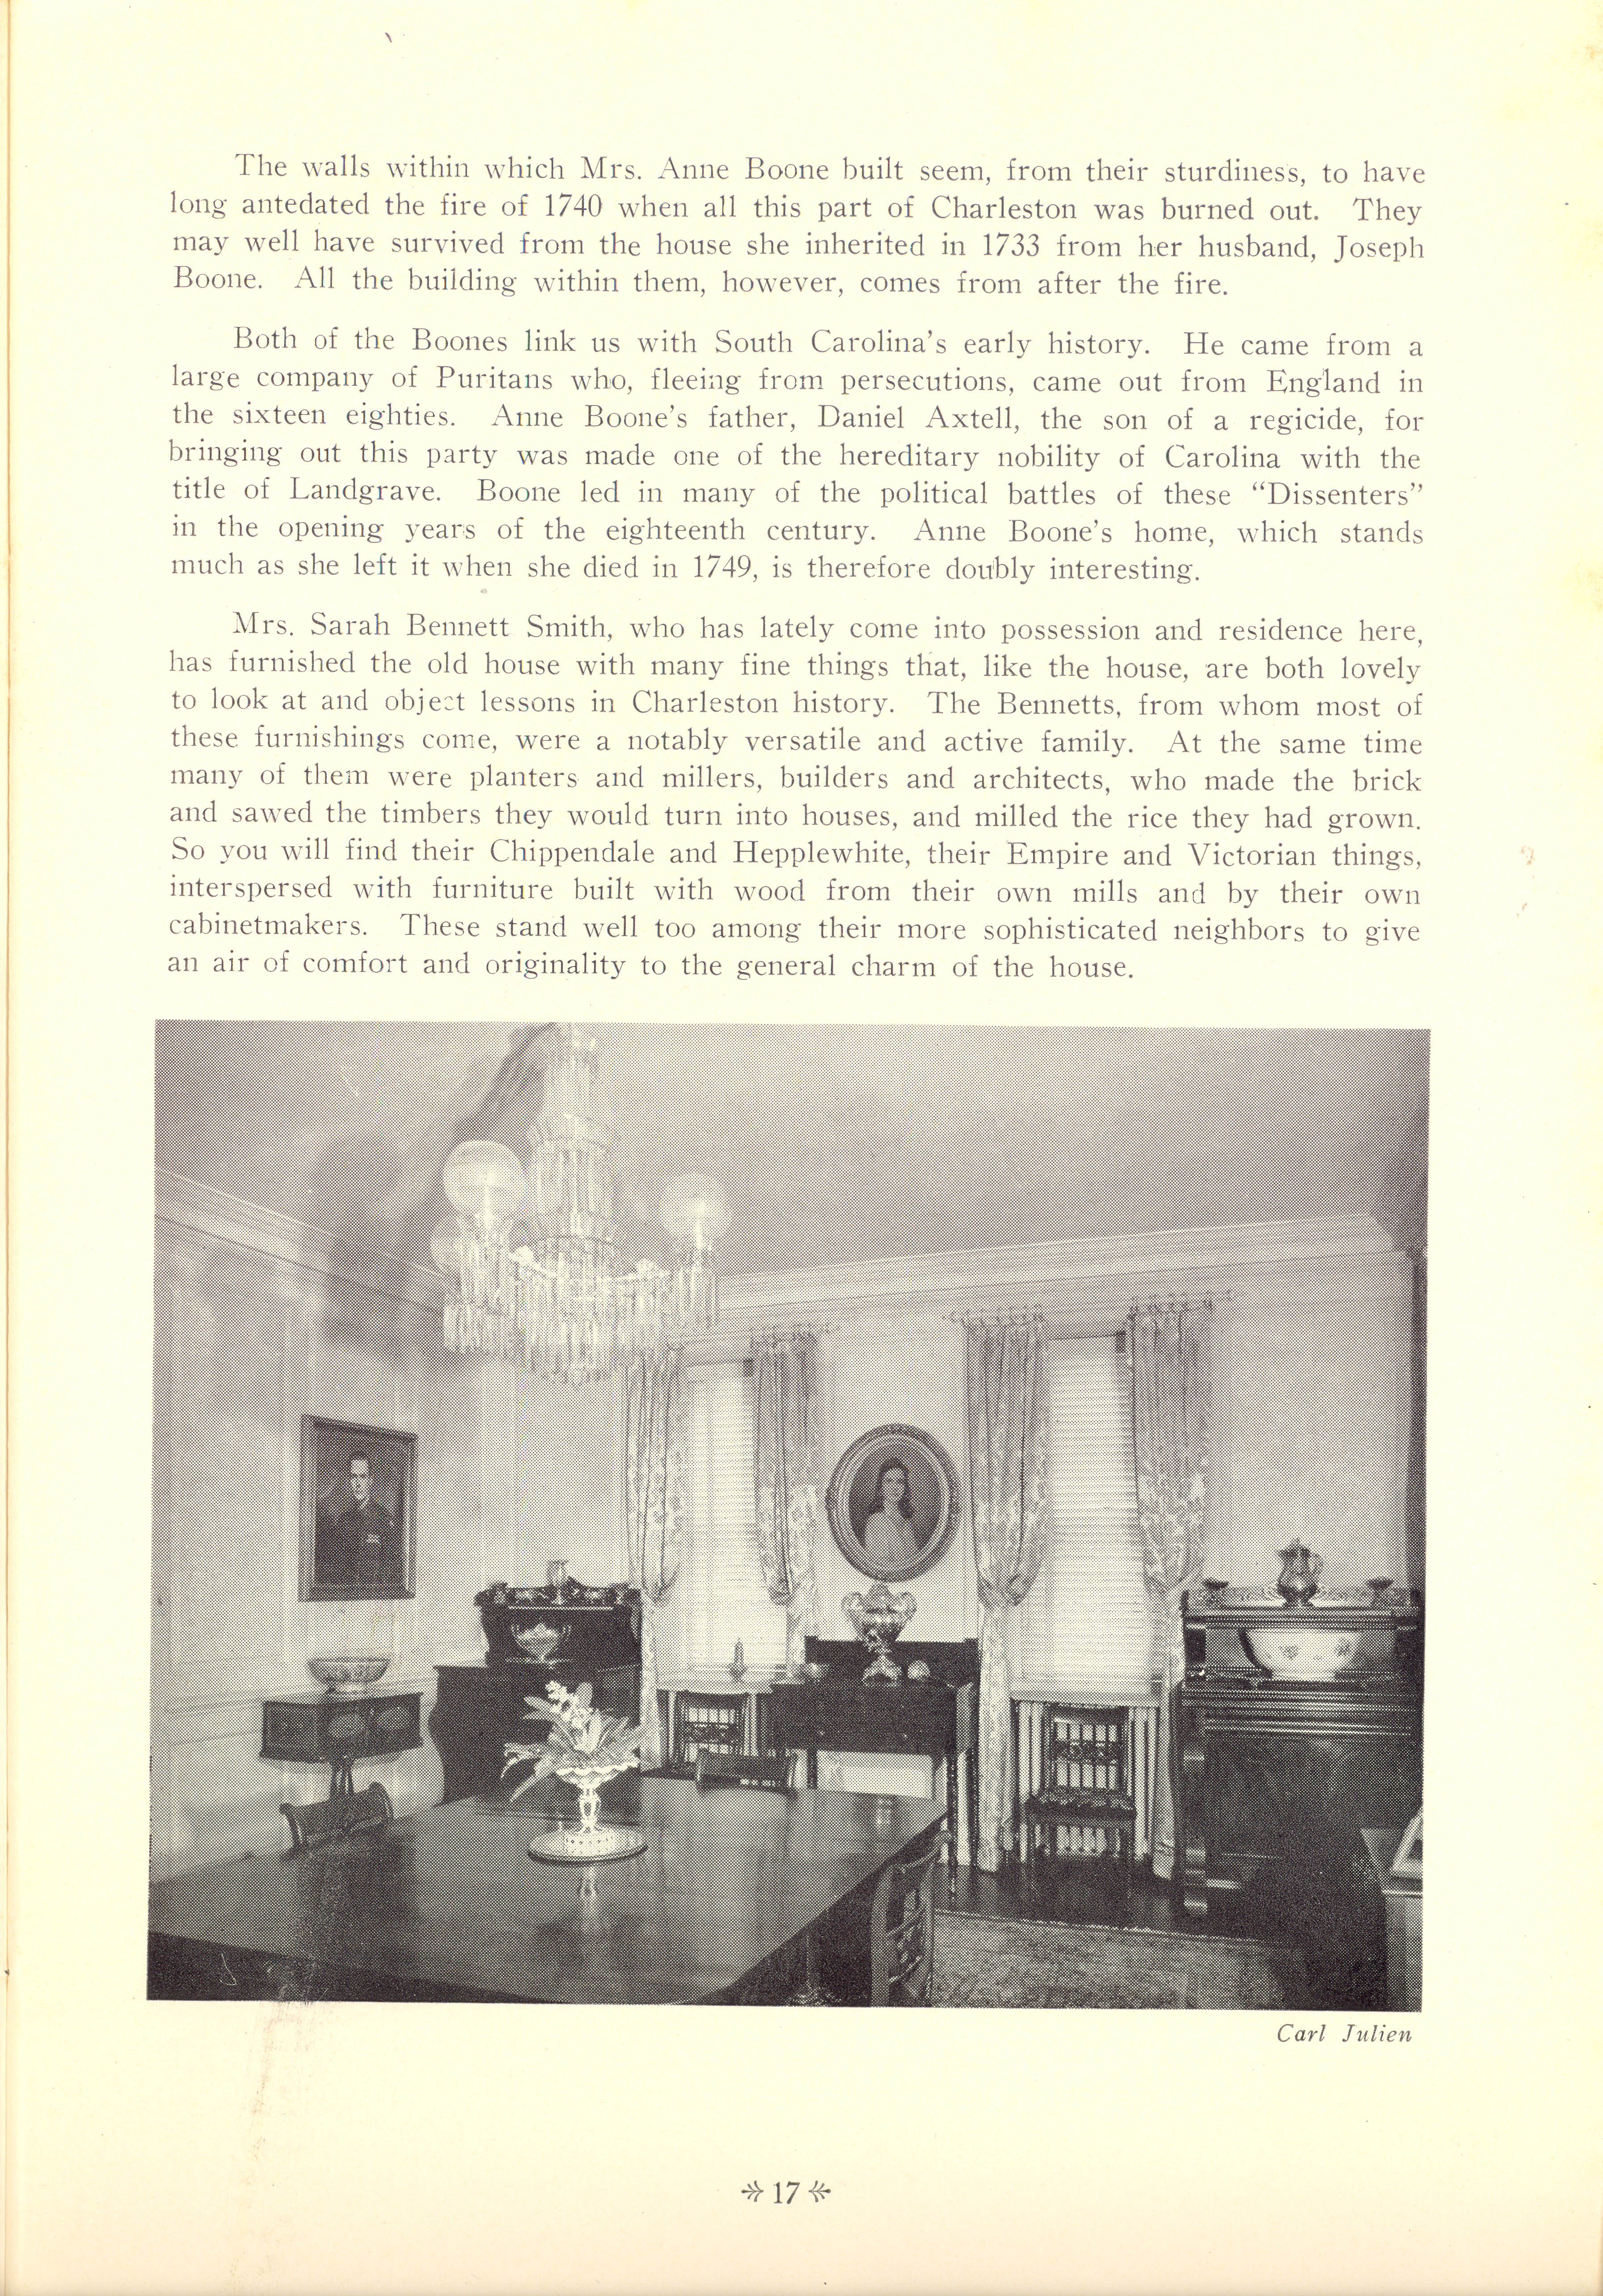 Page 17:  No. 4 - Mrs. Anne Boone's House, 47 East Bay Street, c. 1740, cont'd